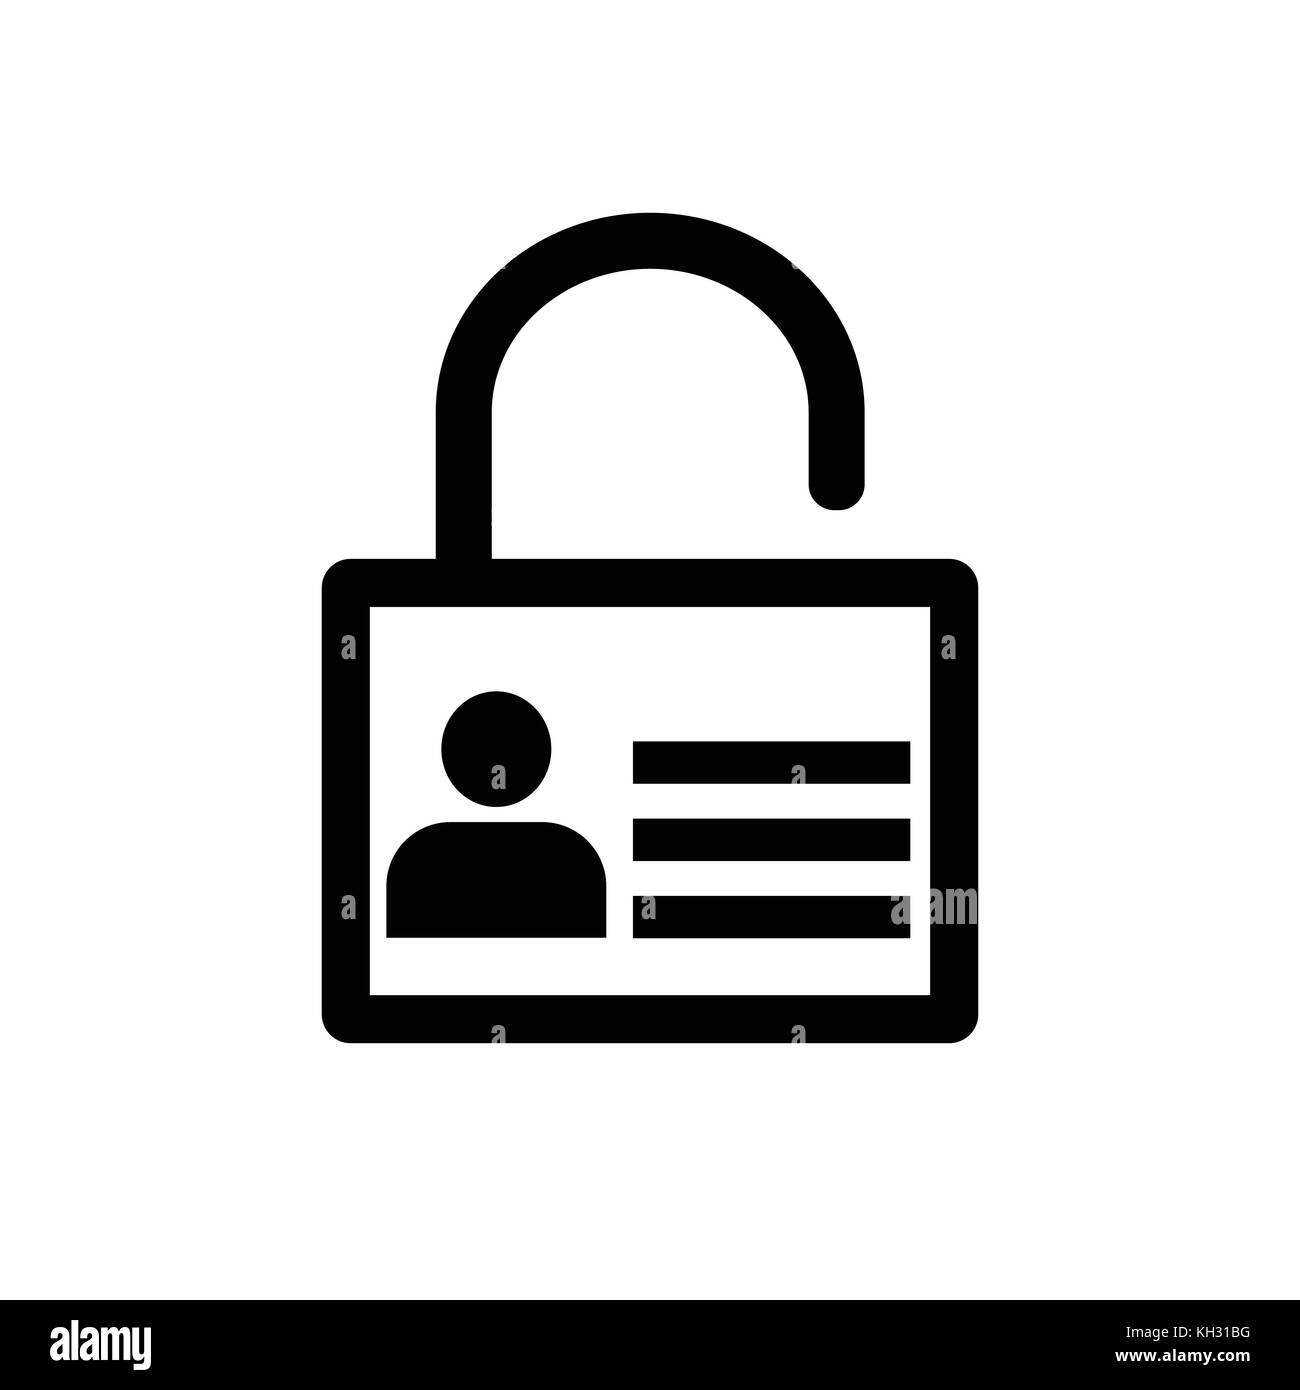 Lock icon, User icon on key, Personal protection icon. Internet privacy protection icon. Password protected. Security - Stock Image